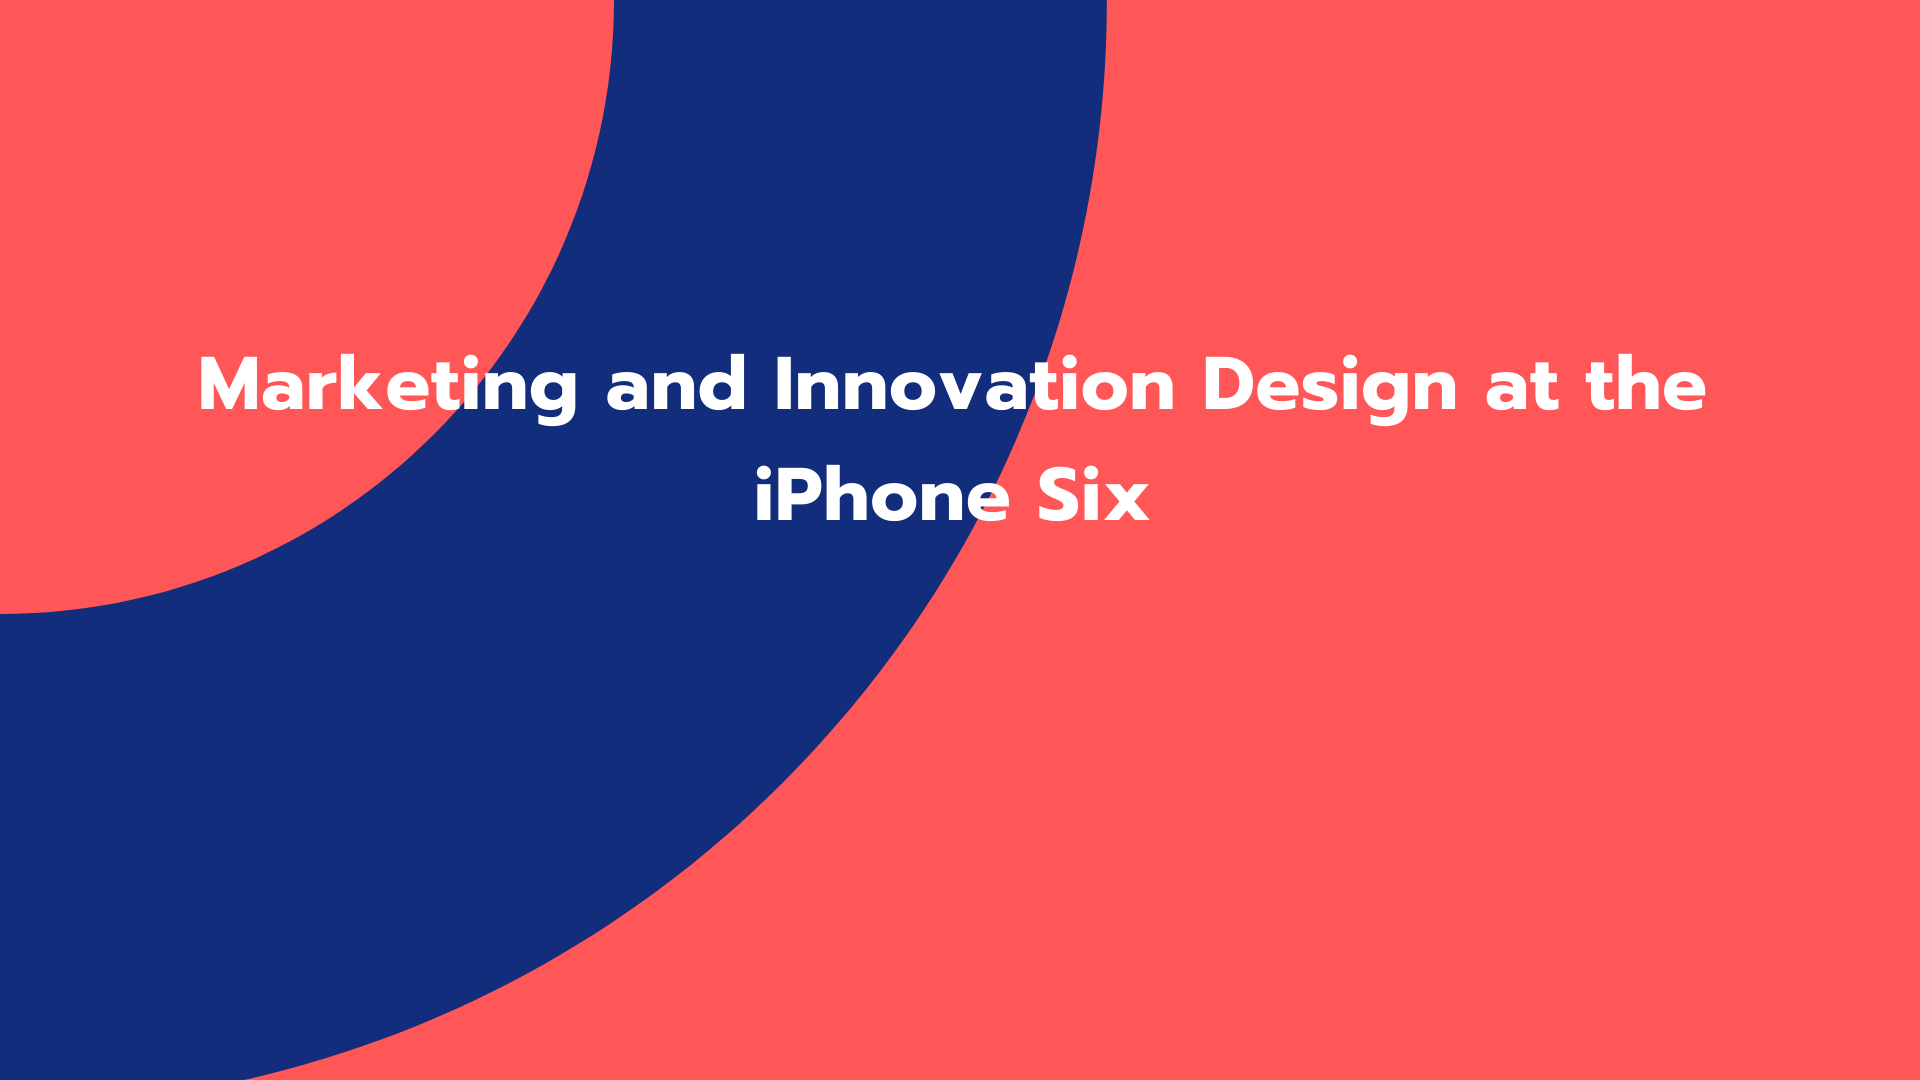 Marketing and Innovation Design at the iPhone Six